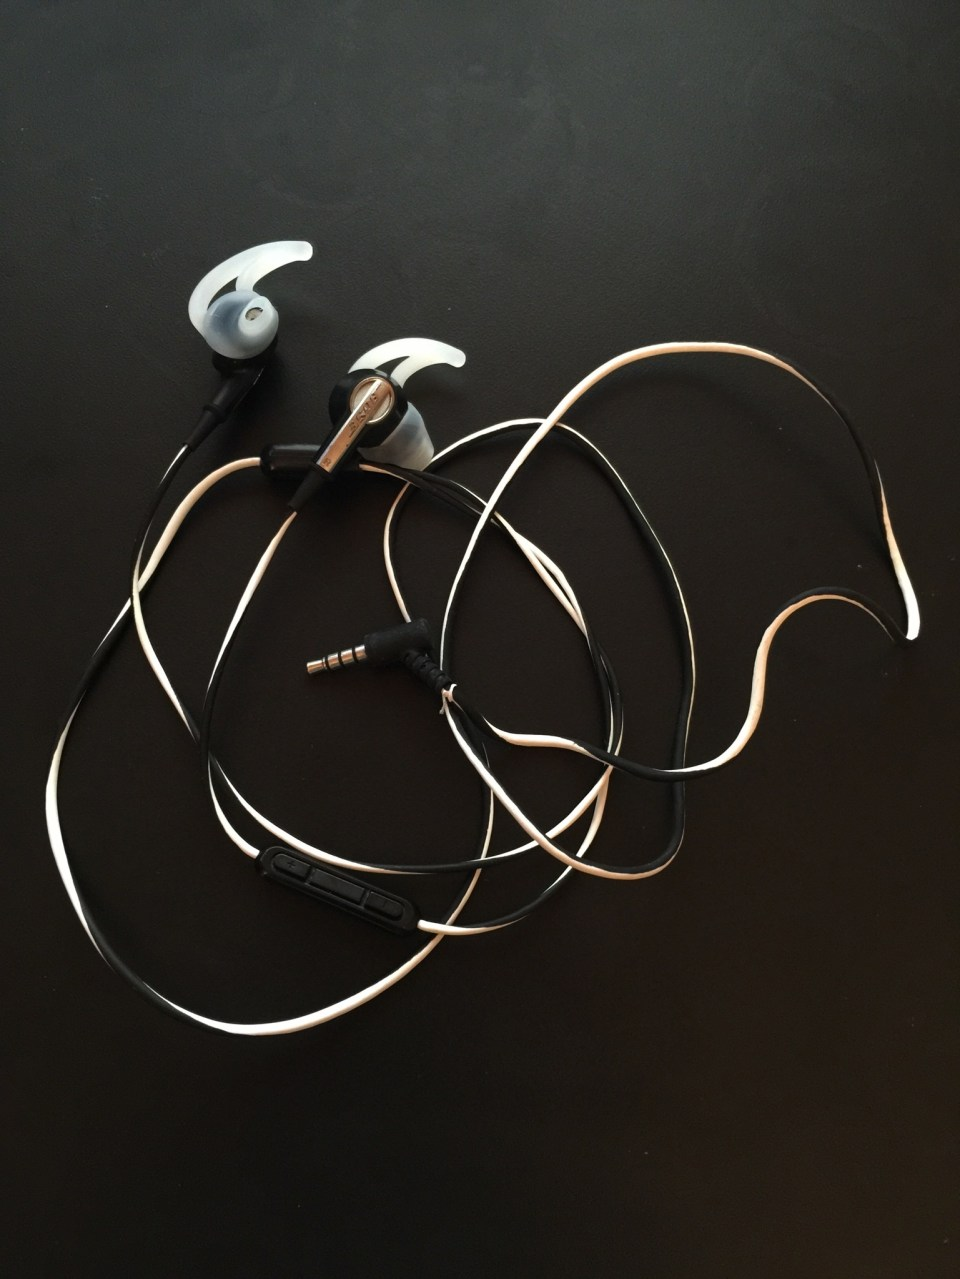 Bose MIE2i headphones